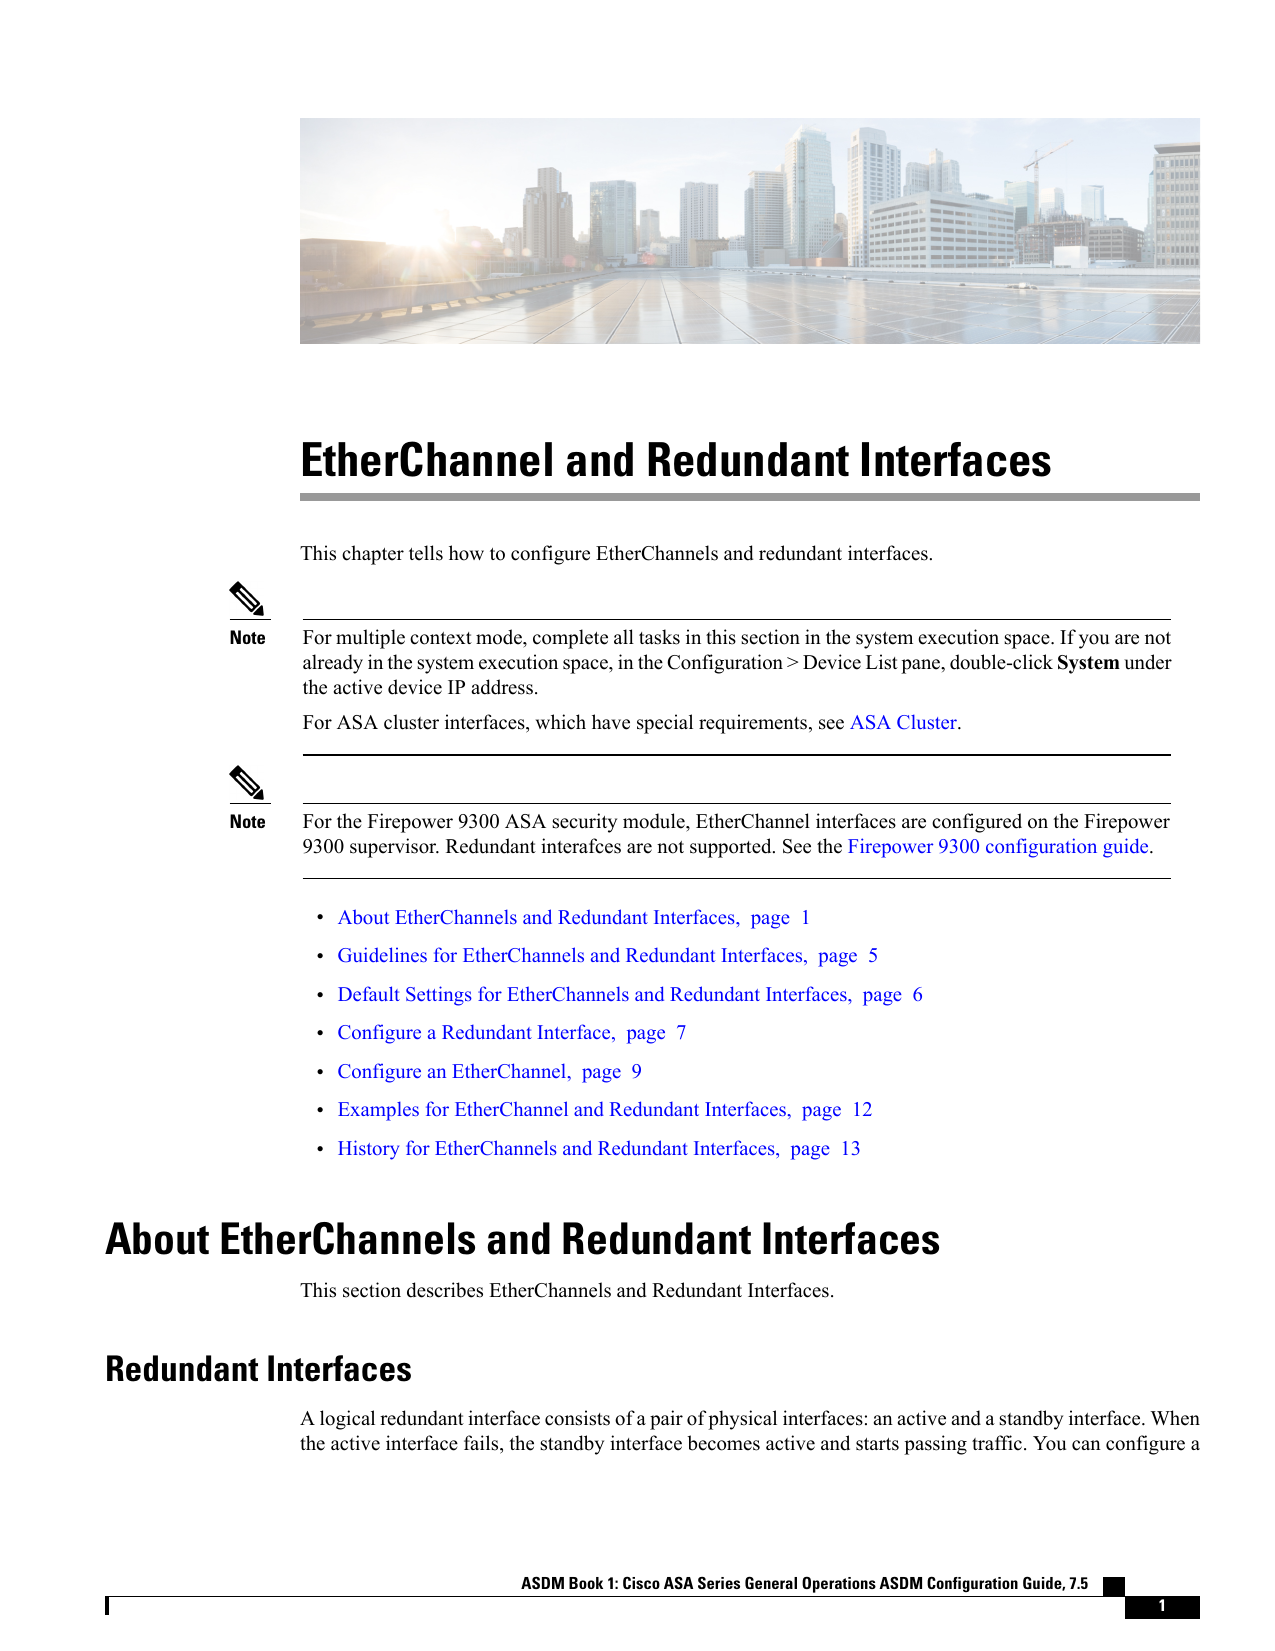 EtherChannel and Redundant Interfaces